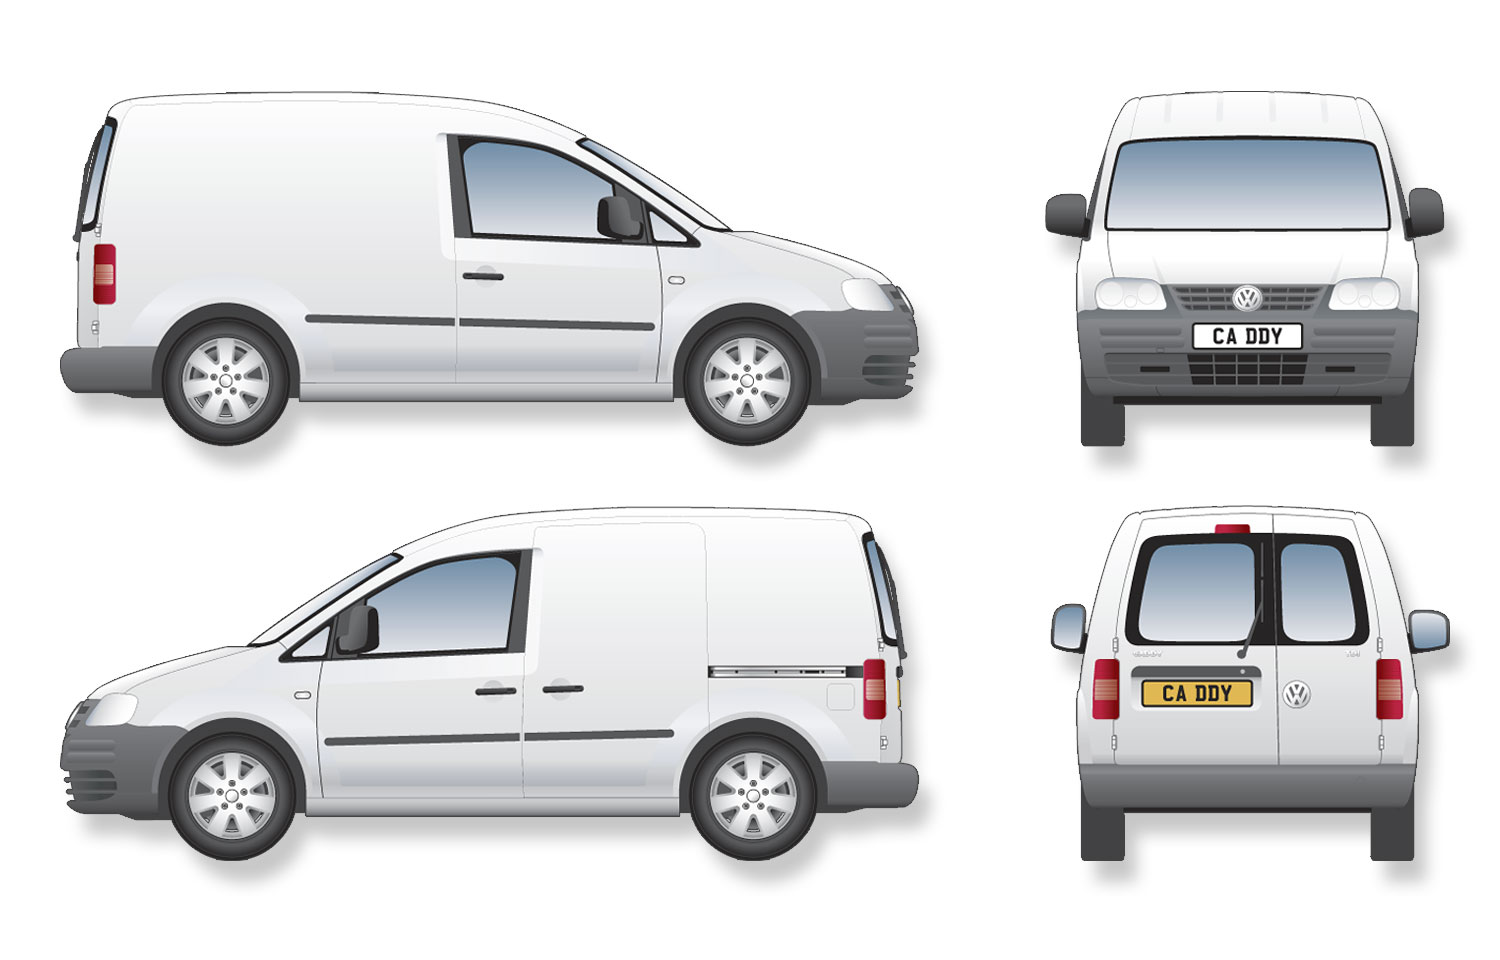 Volkswagen Caddy Van (2004) Signwriter's vector drawings, blueprints